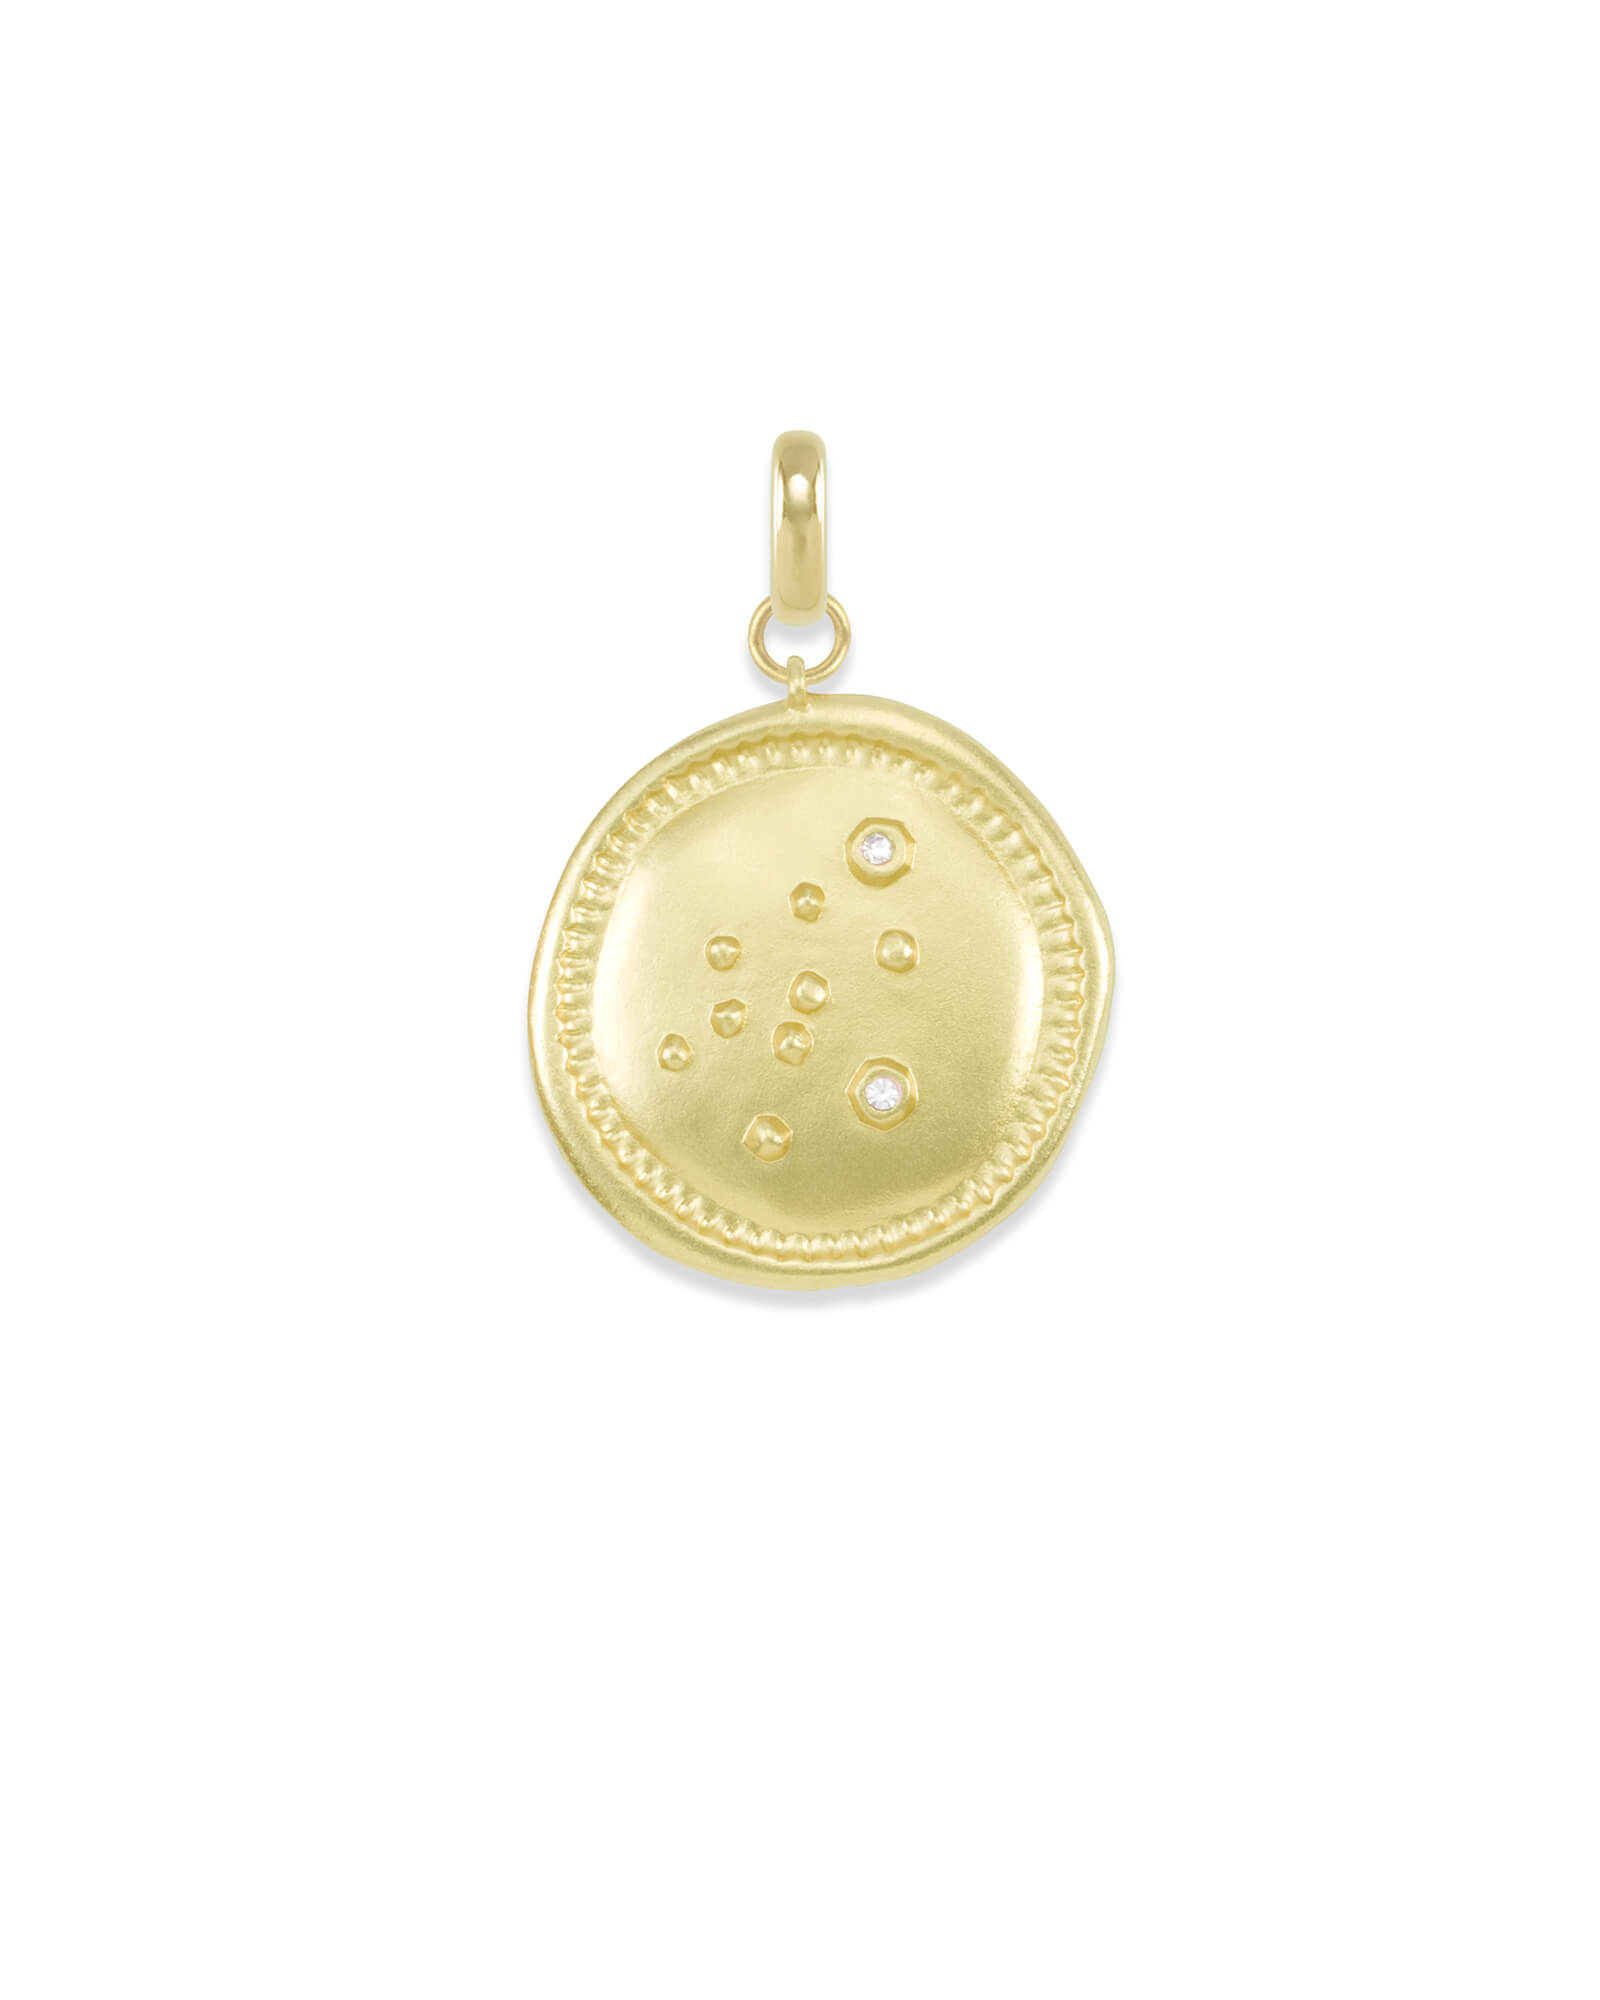 Aquarius Large Coin Charm